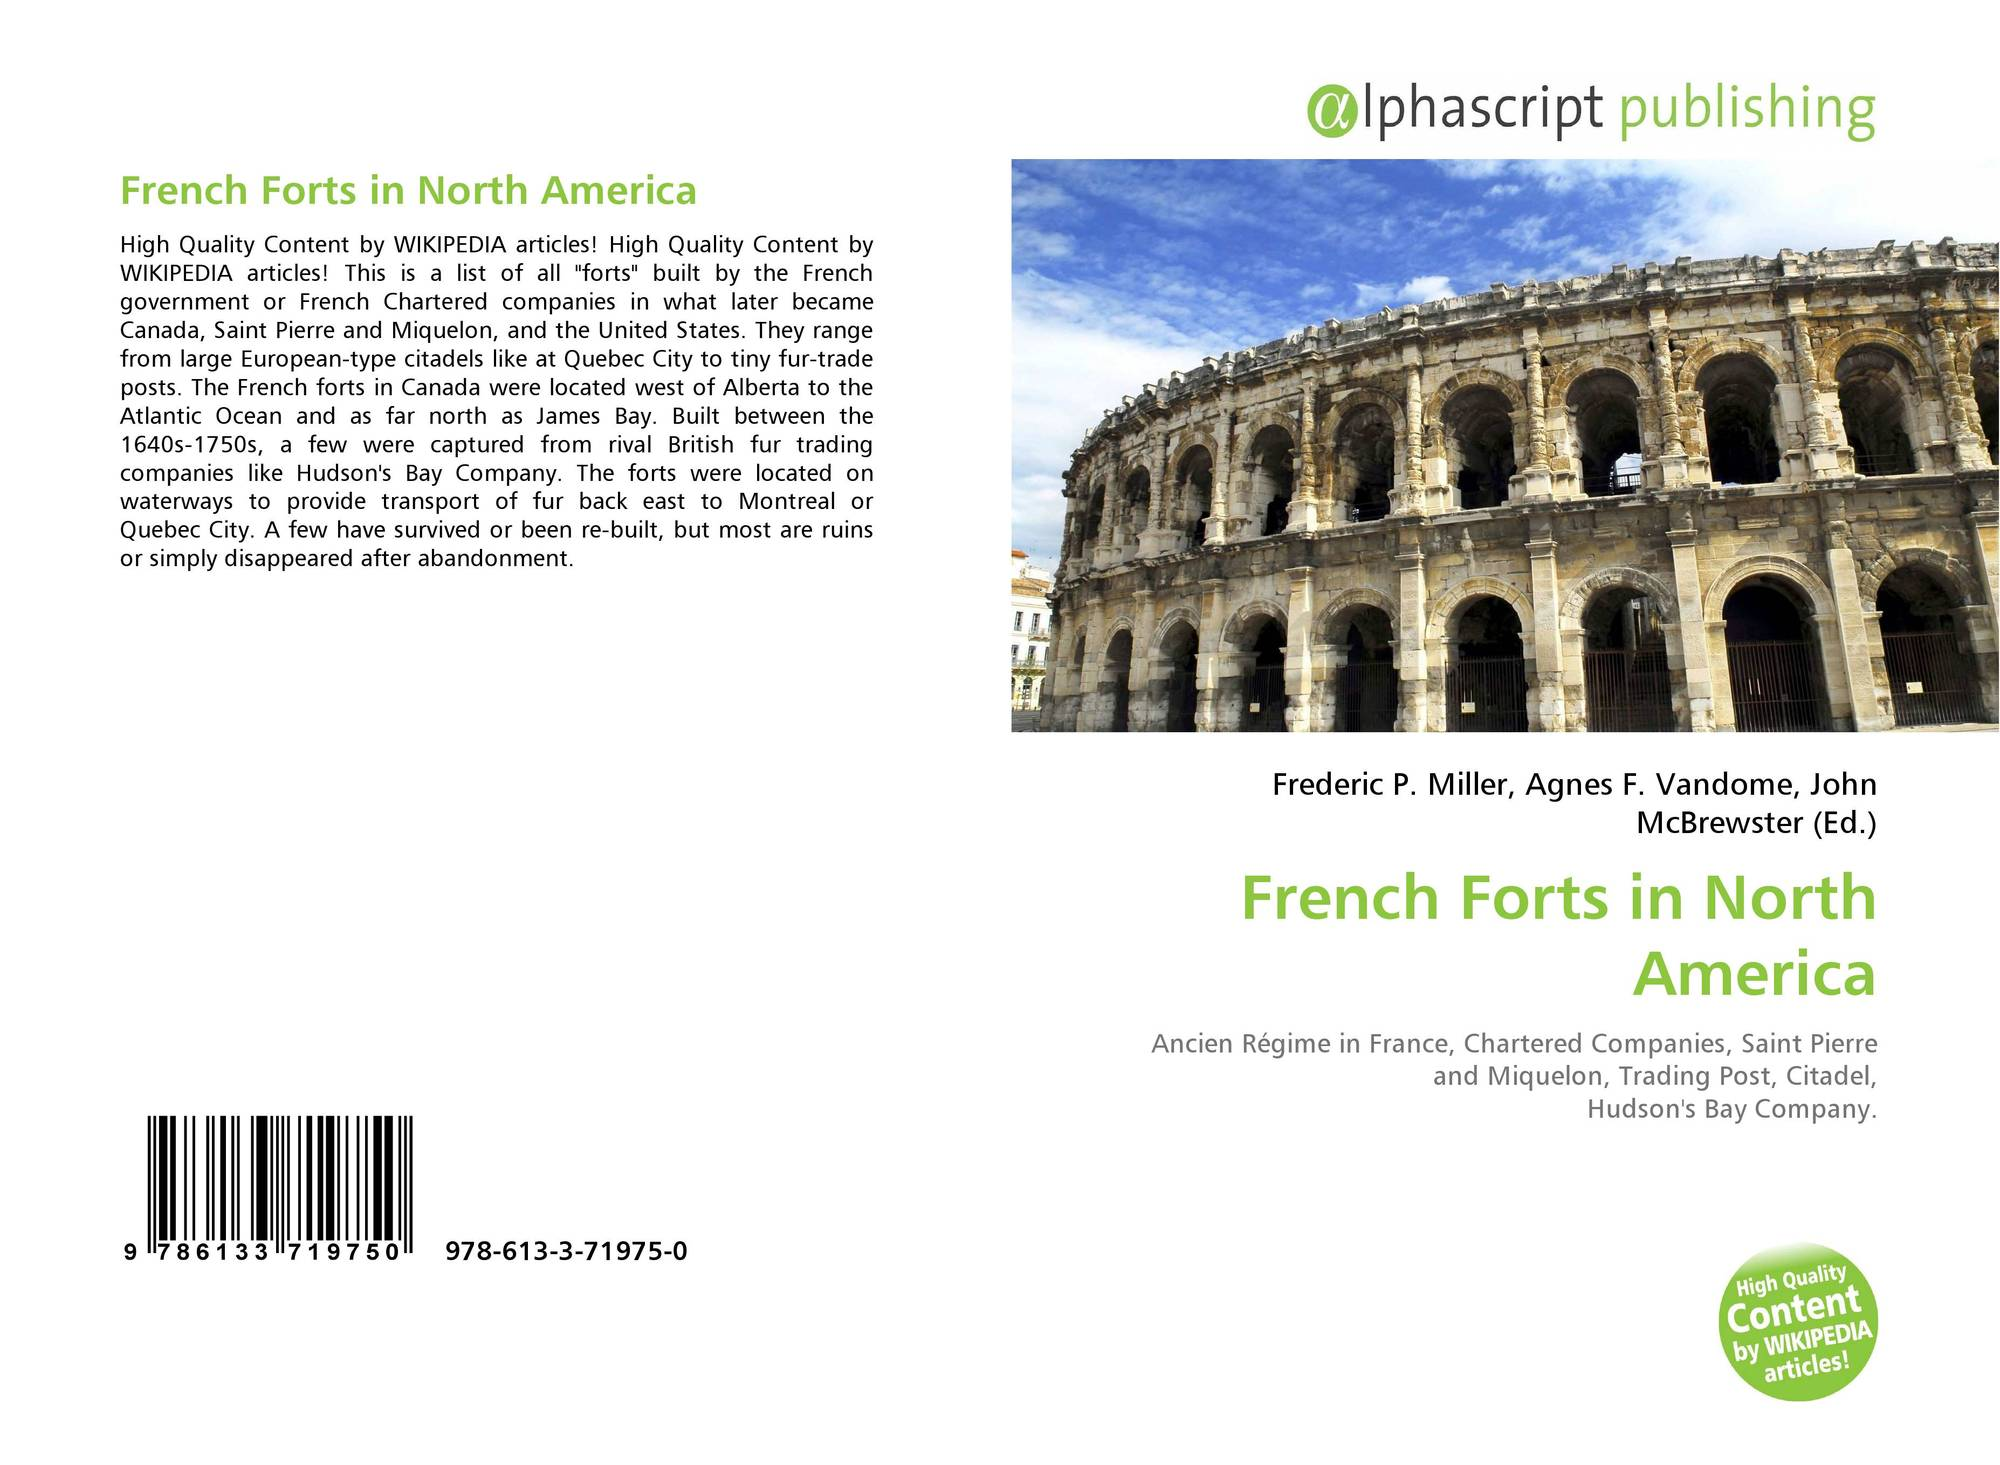 French Forts in North America, 978-613-3-71975-0, 6133719753